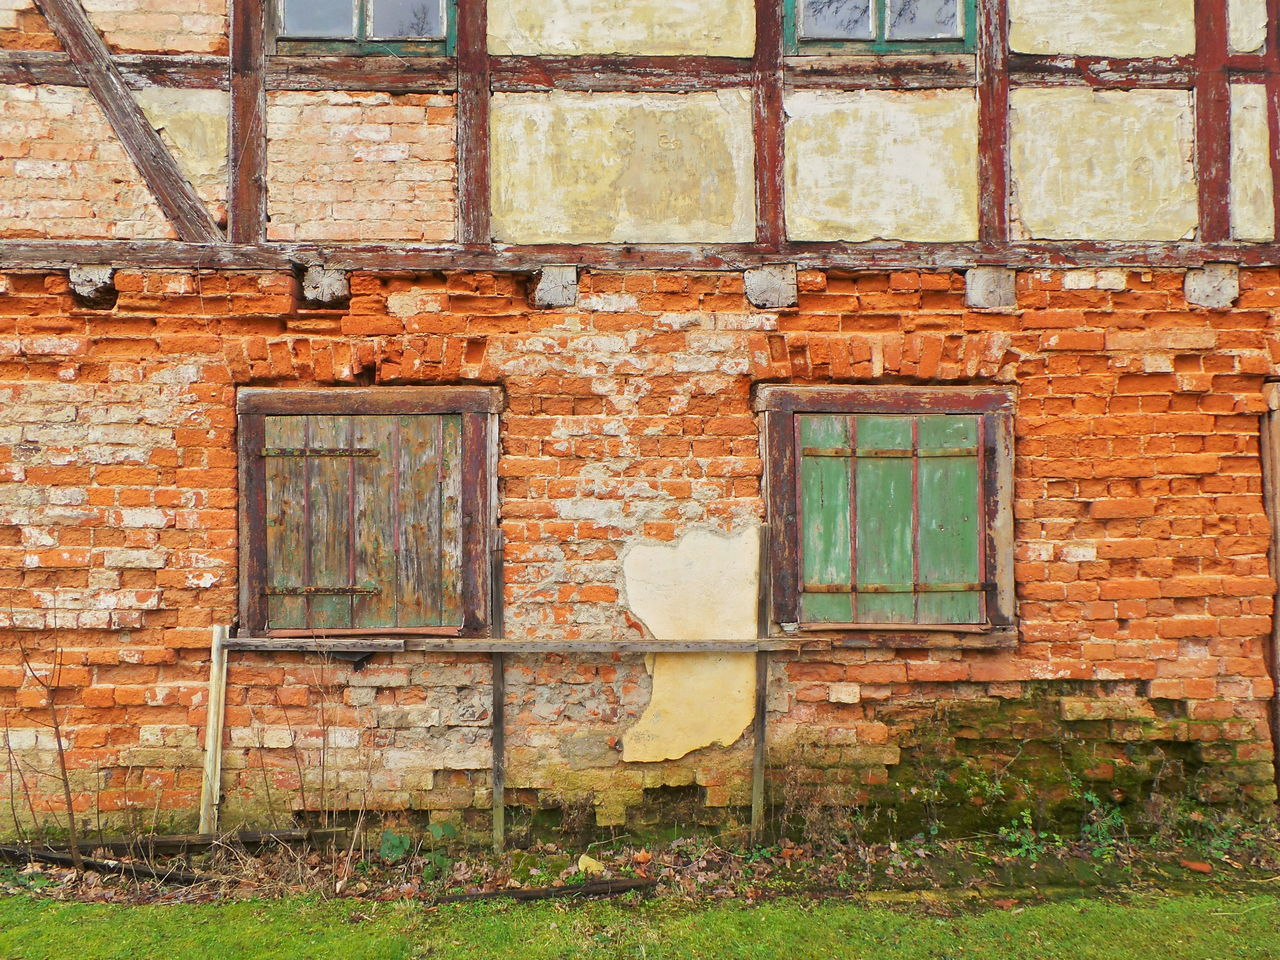 architecture, window, building exterior, built structure, brick wall, abandoned, weathered, door, no people, day, outdoors, rotting